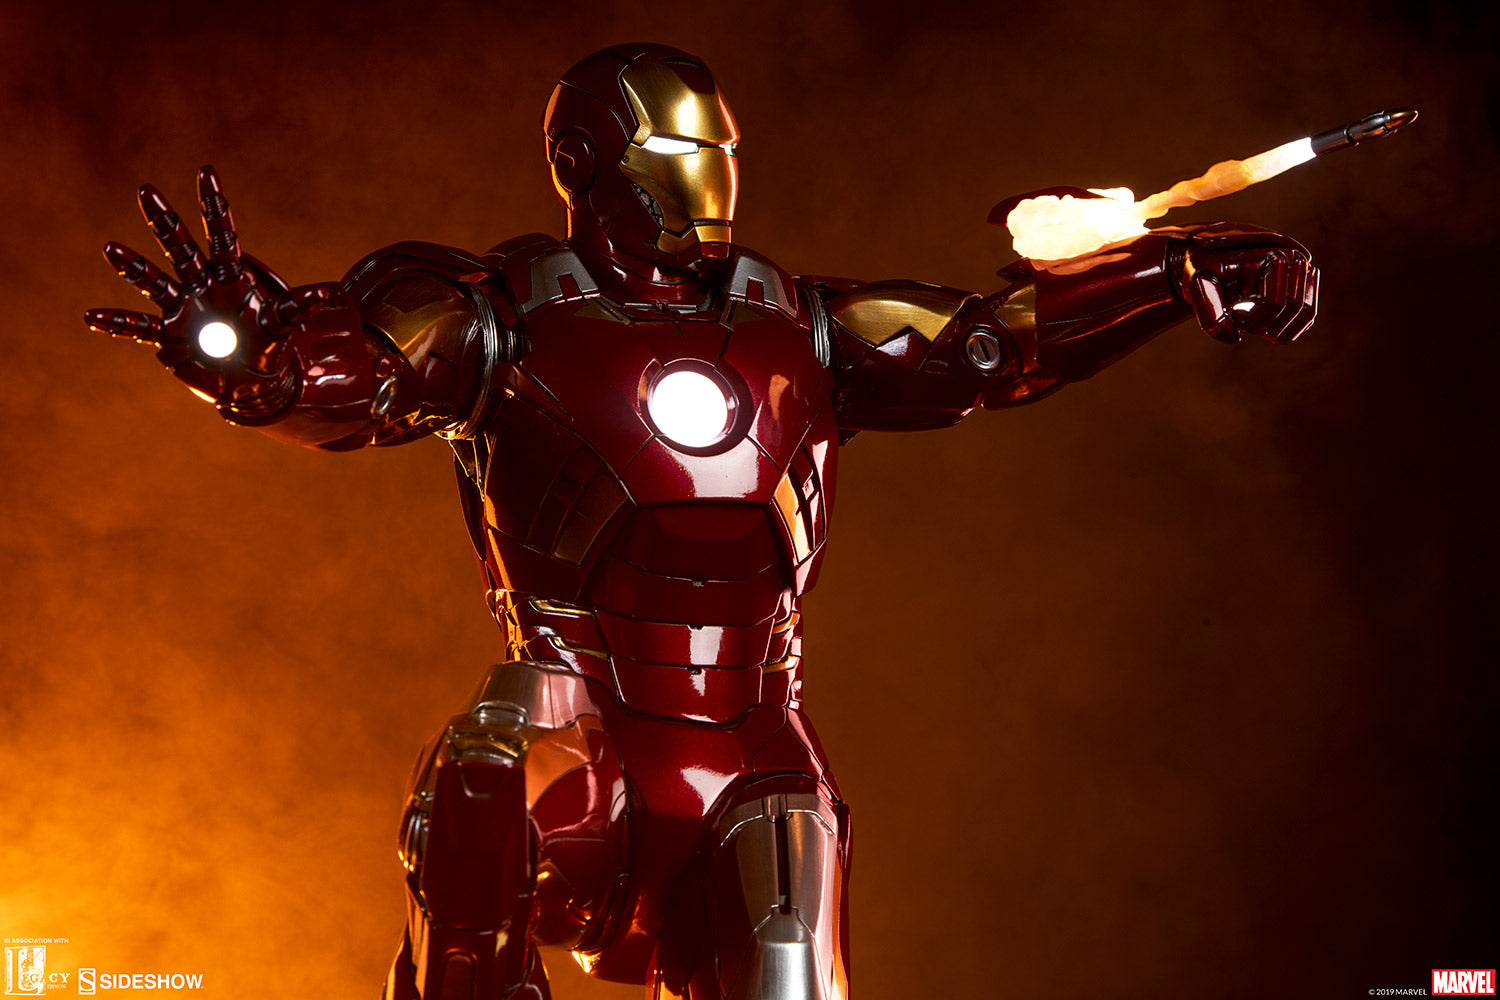 Sideshow Collectibles - Maquette - The Avengers - Iron Man Mark VII